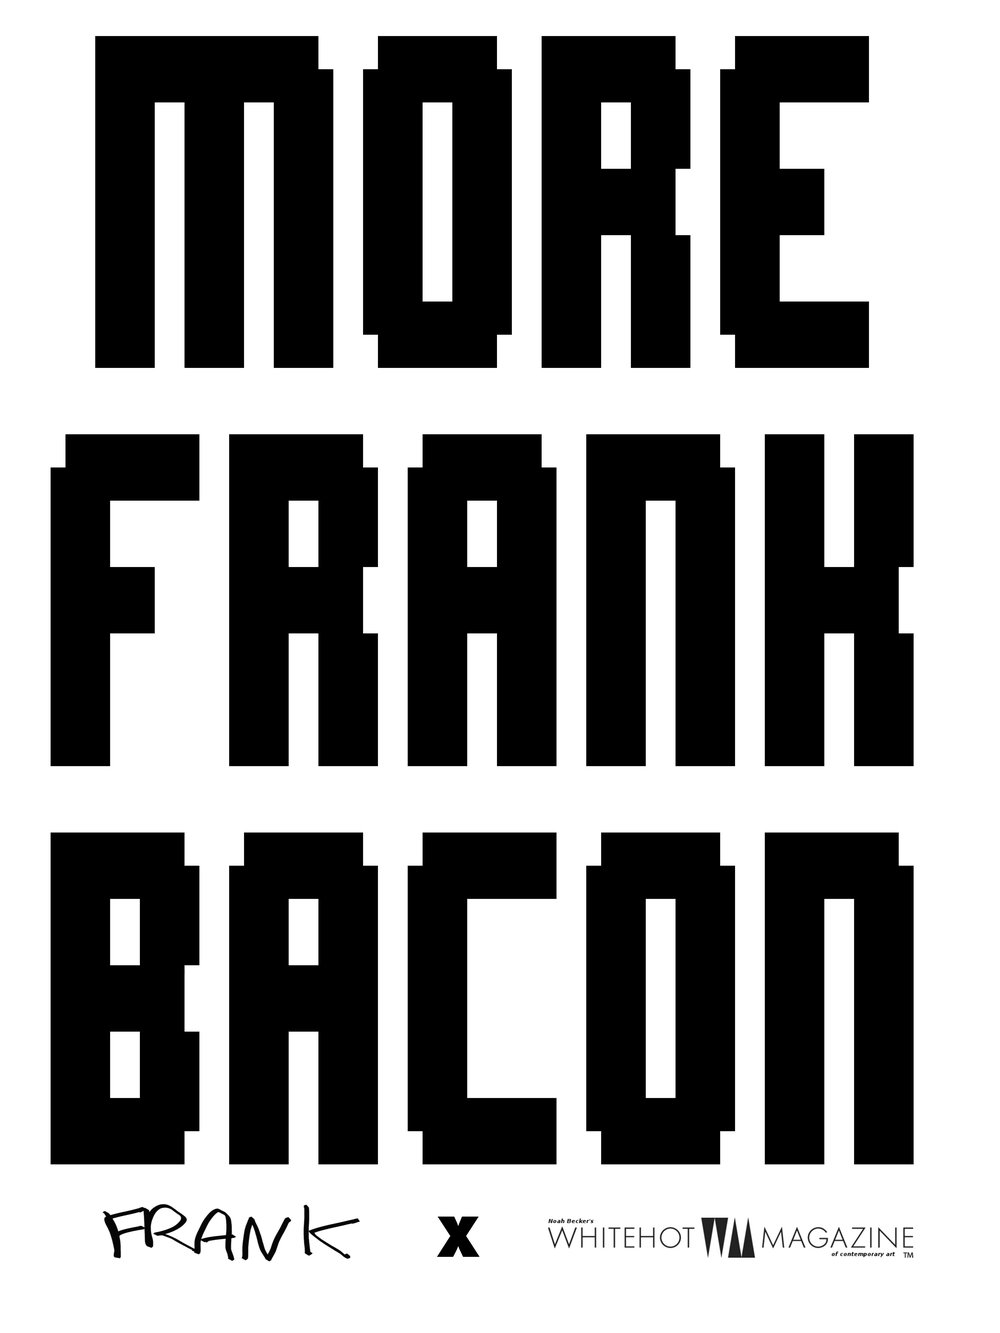 more frank bacon.JPG